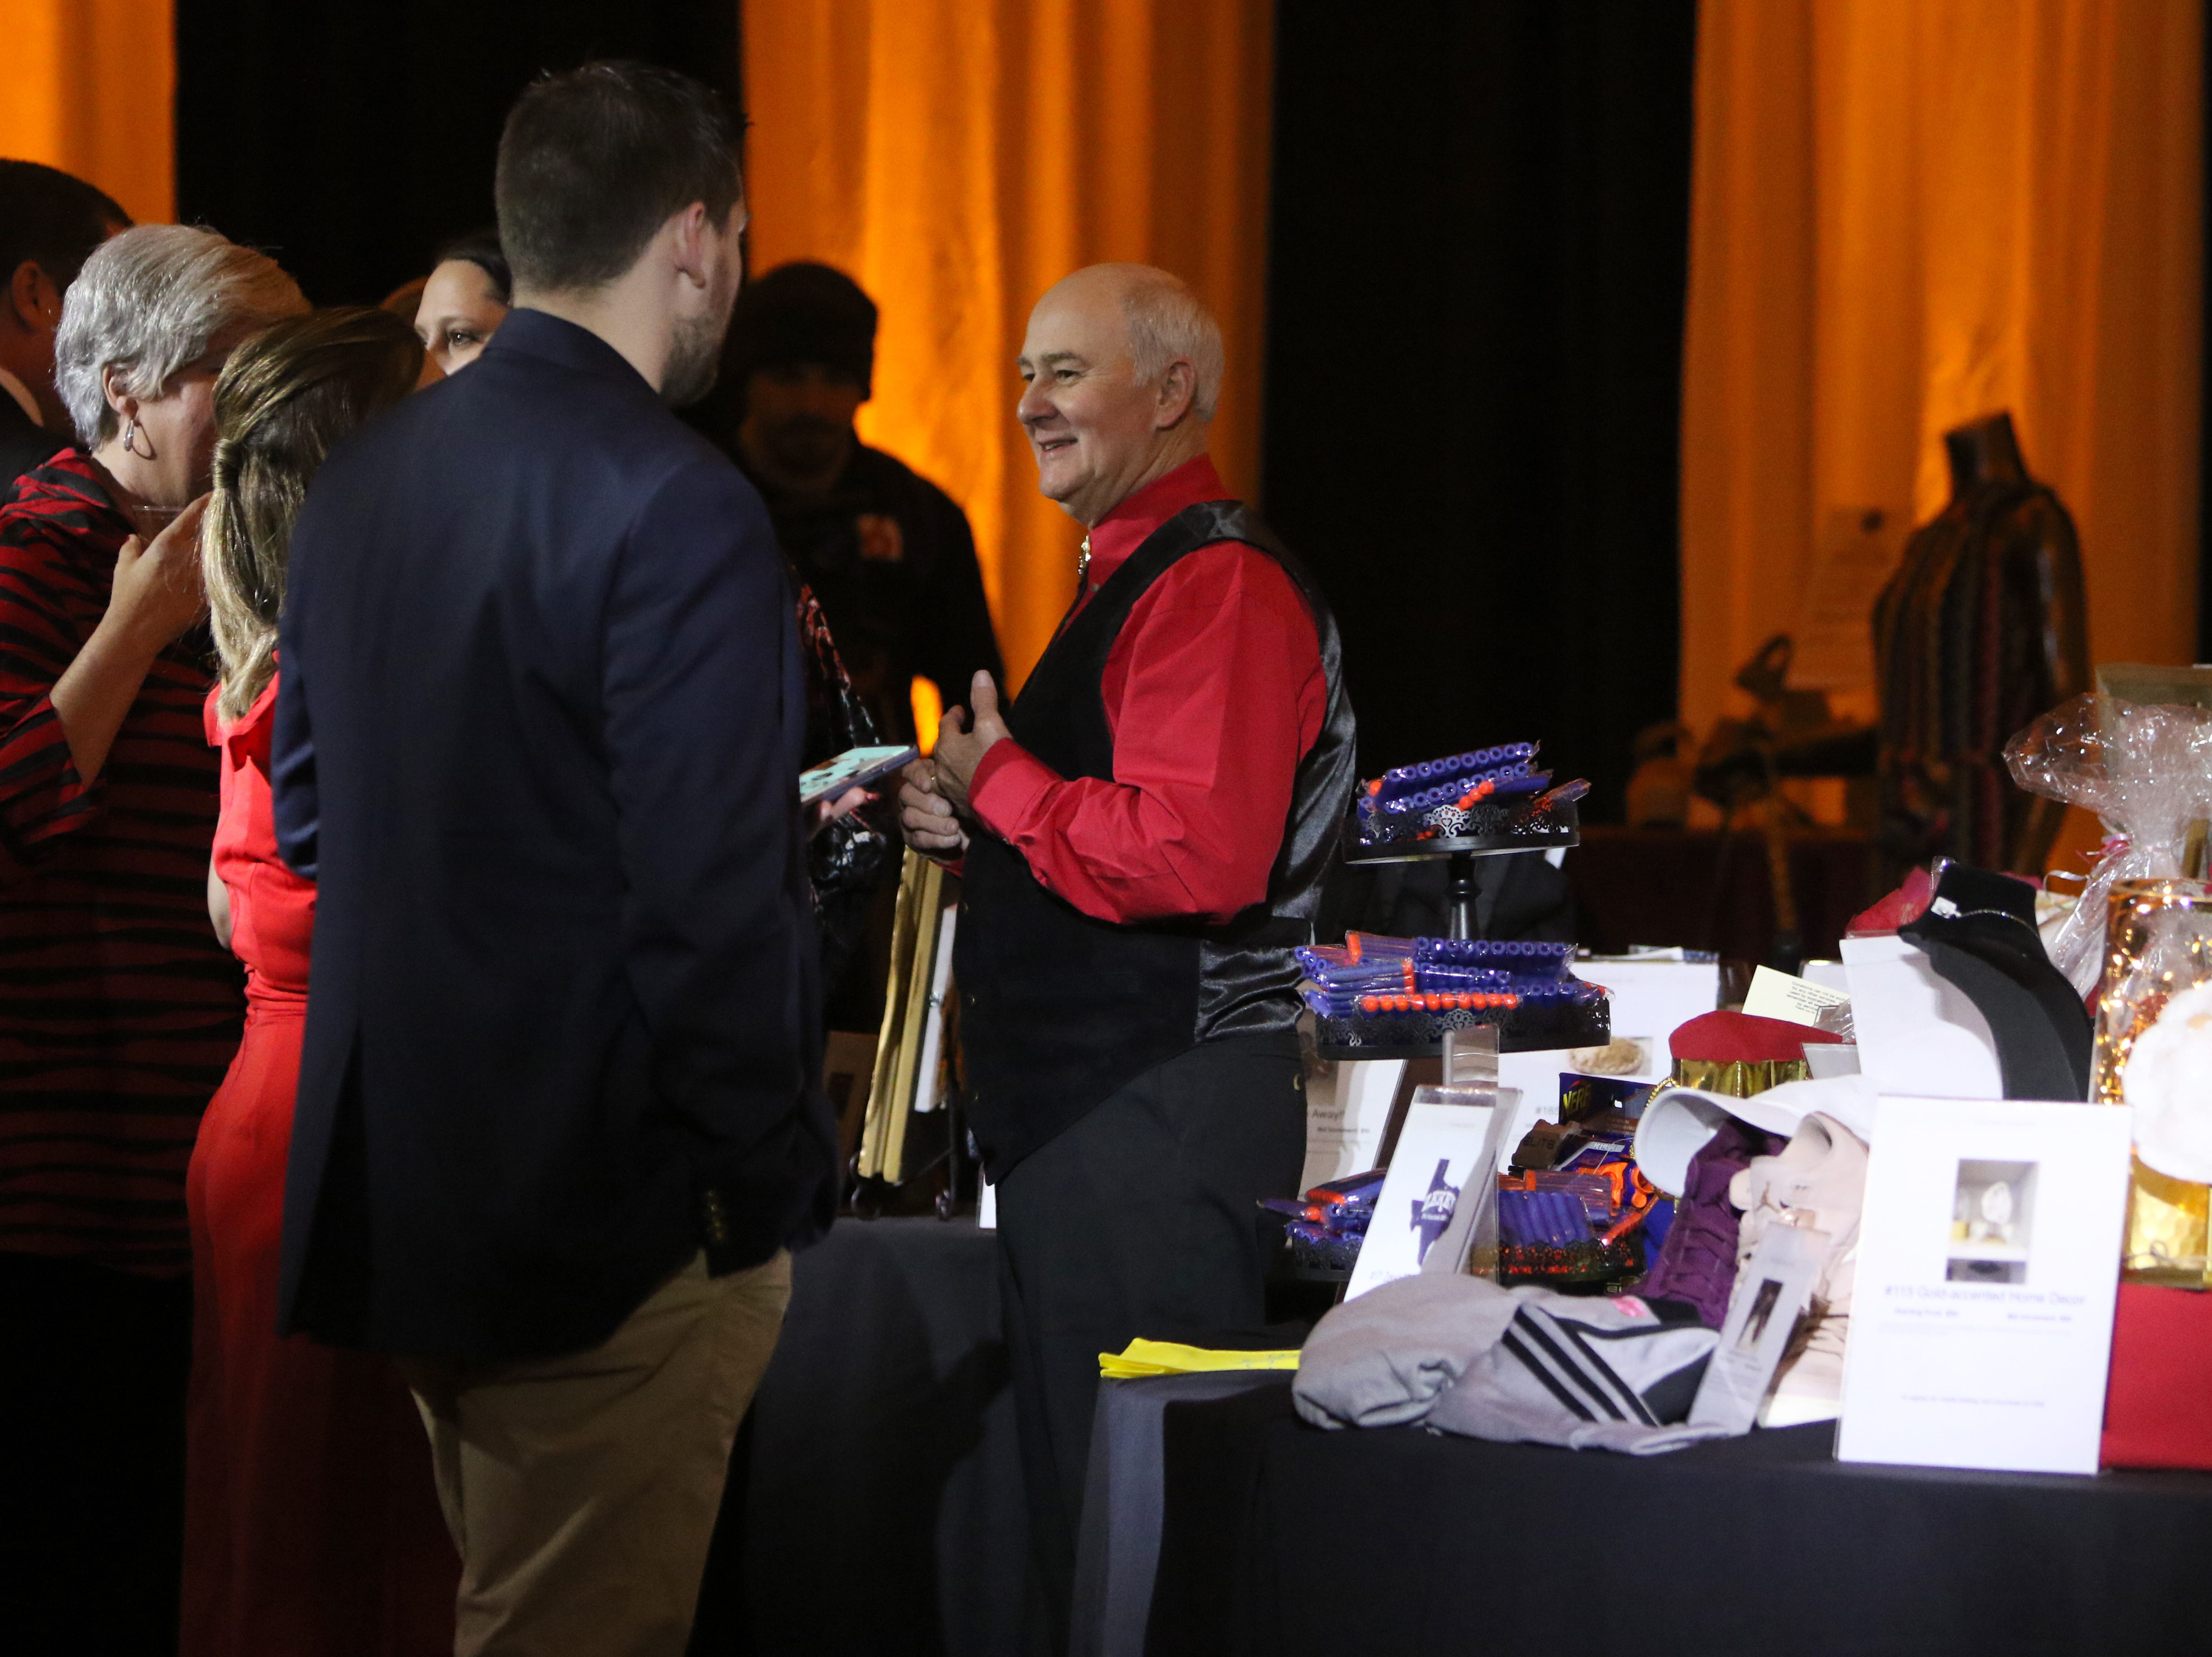 Many items were available for people to bid on at the silent aution at Christ Academy's 5th Annual Chocolate Soiree Friday, Jan. 25, 2019, at the Country Club.